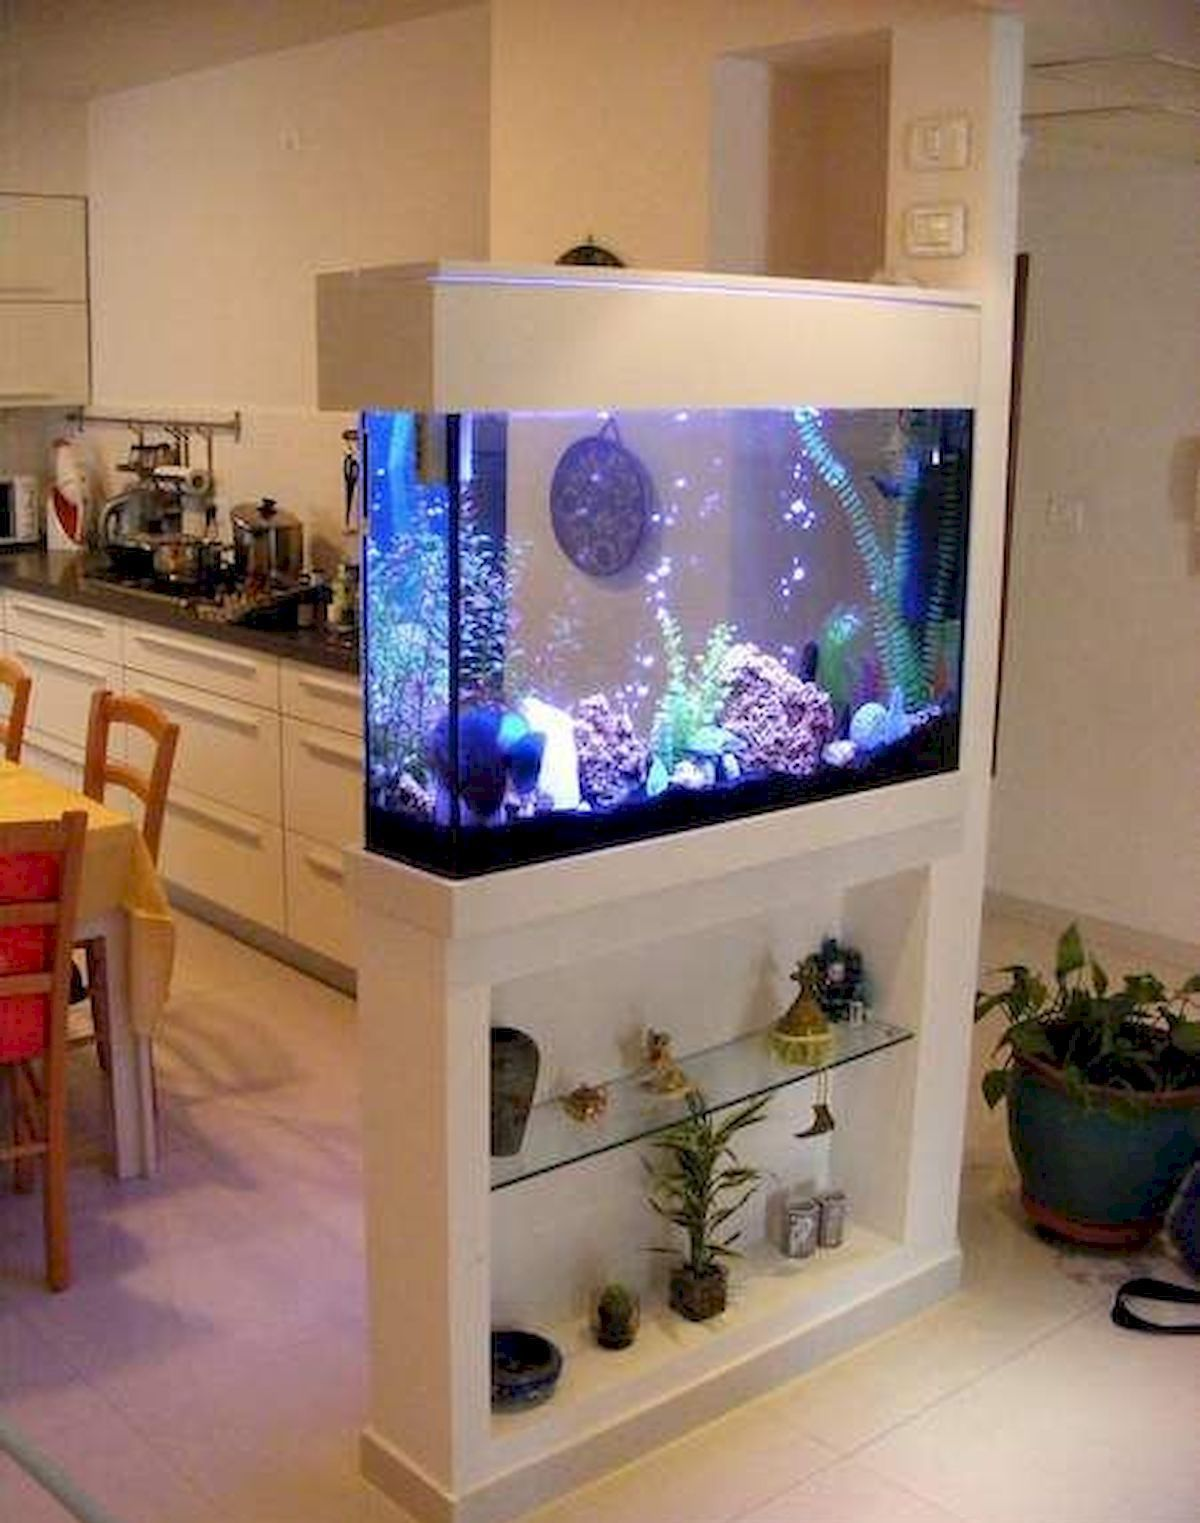 Aquarium Living Room Decor: Wall Divider Aquarium